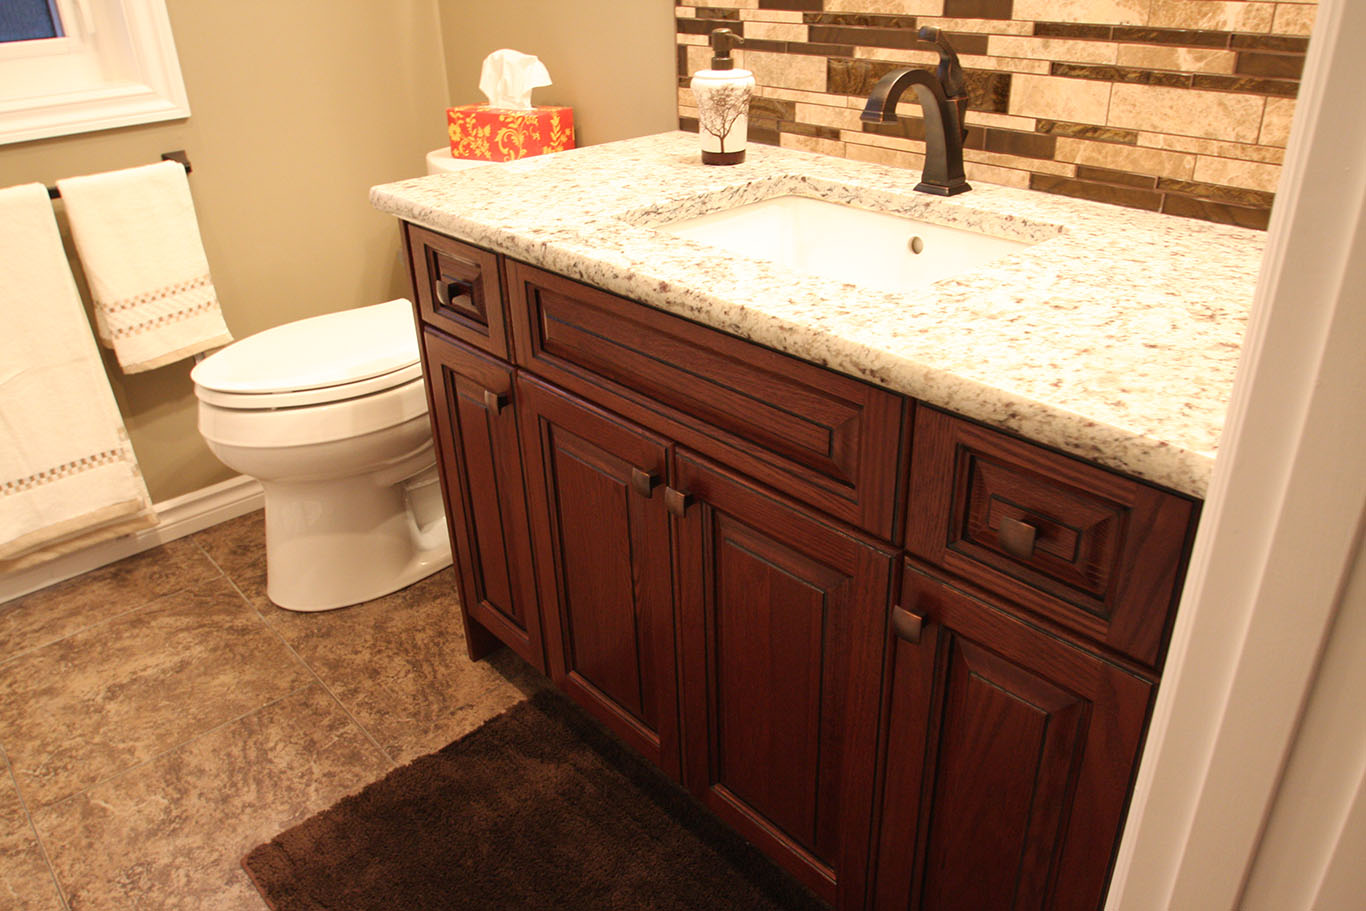 Mid-Range Bathroom Remodel with Countertop